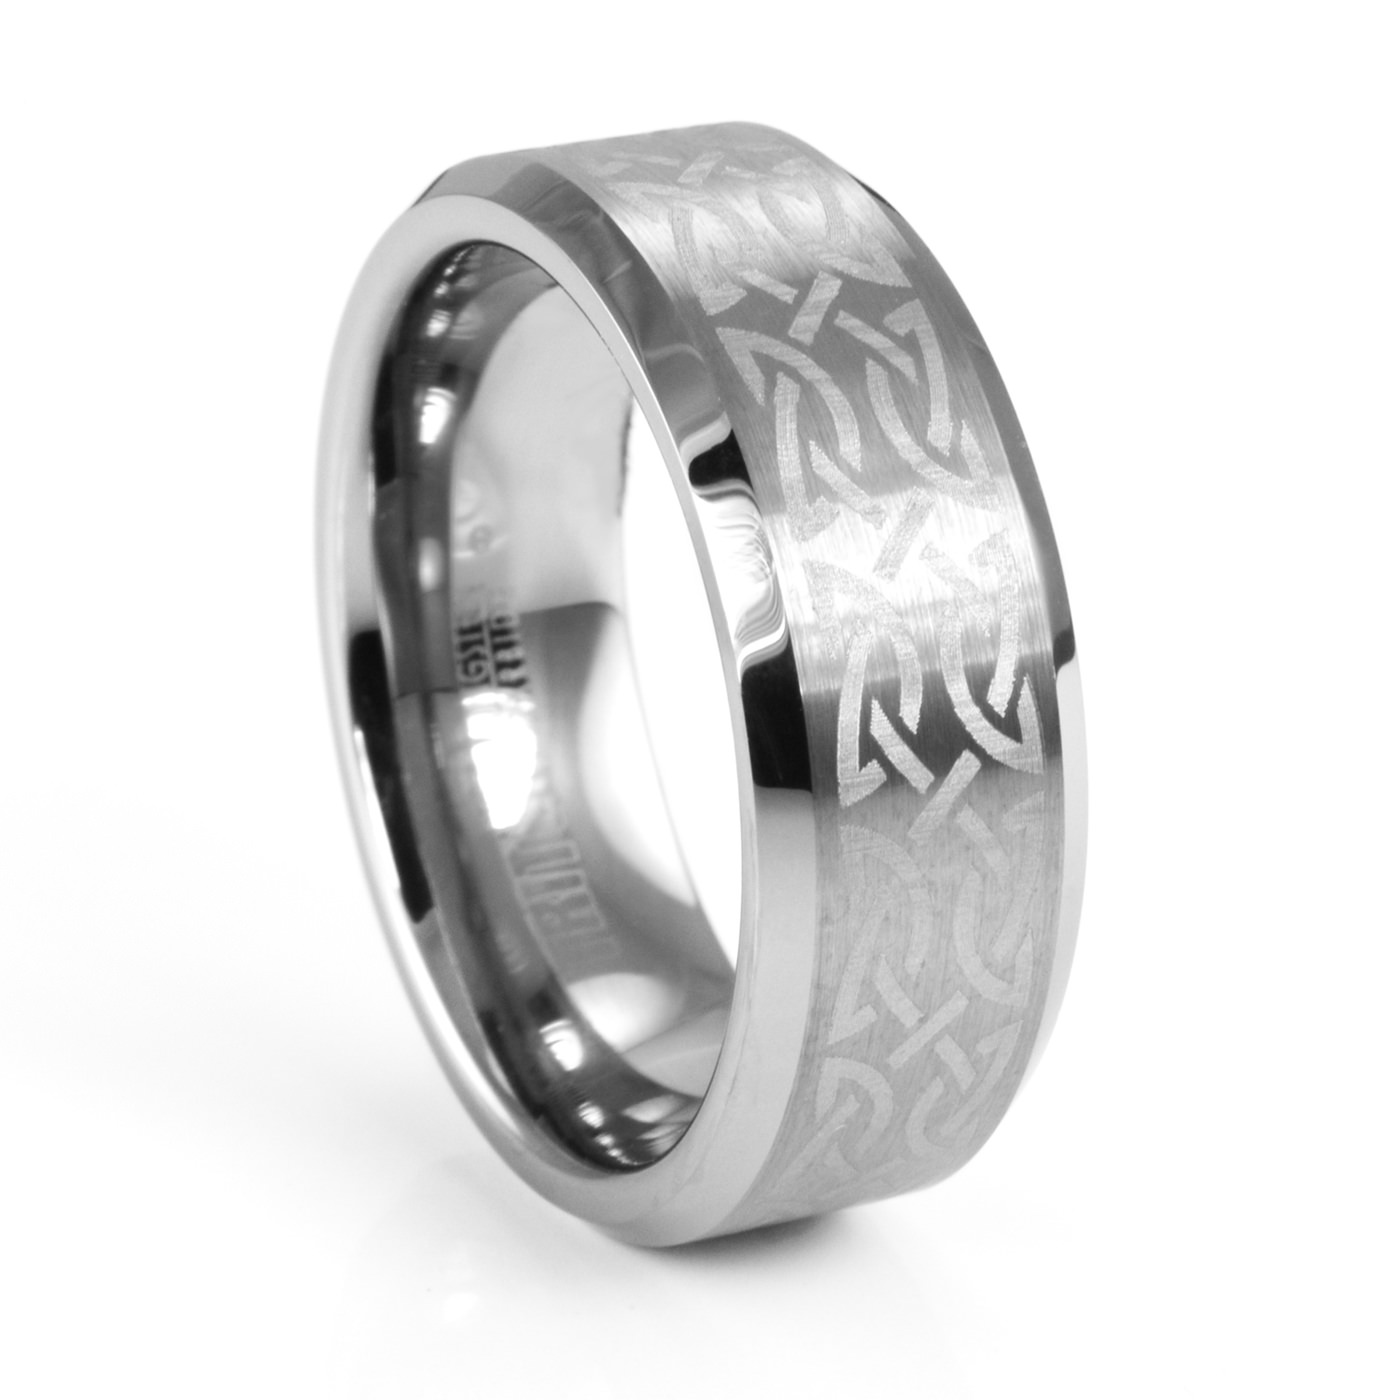 site gallery wedding of gaelic meaning rings my hers cool bands celtic scottish and his for traditional nice